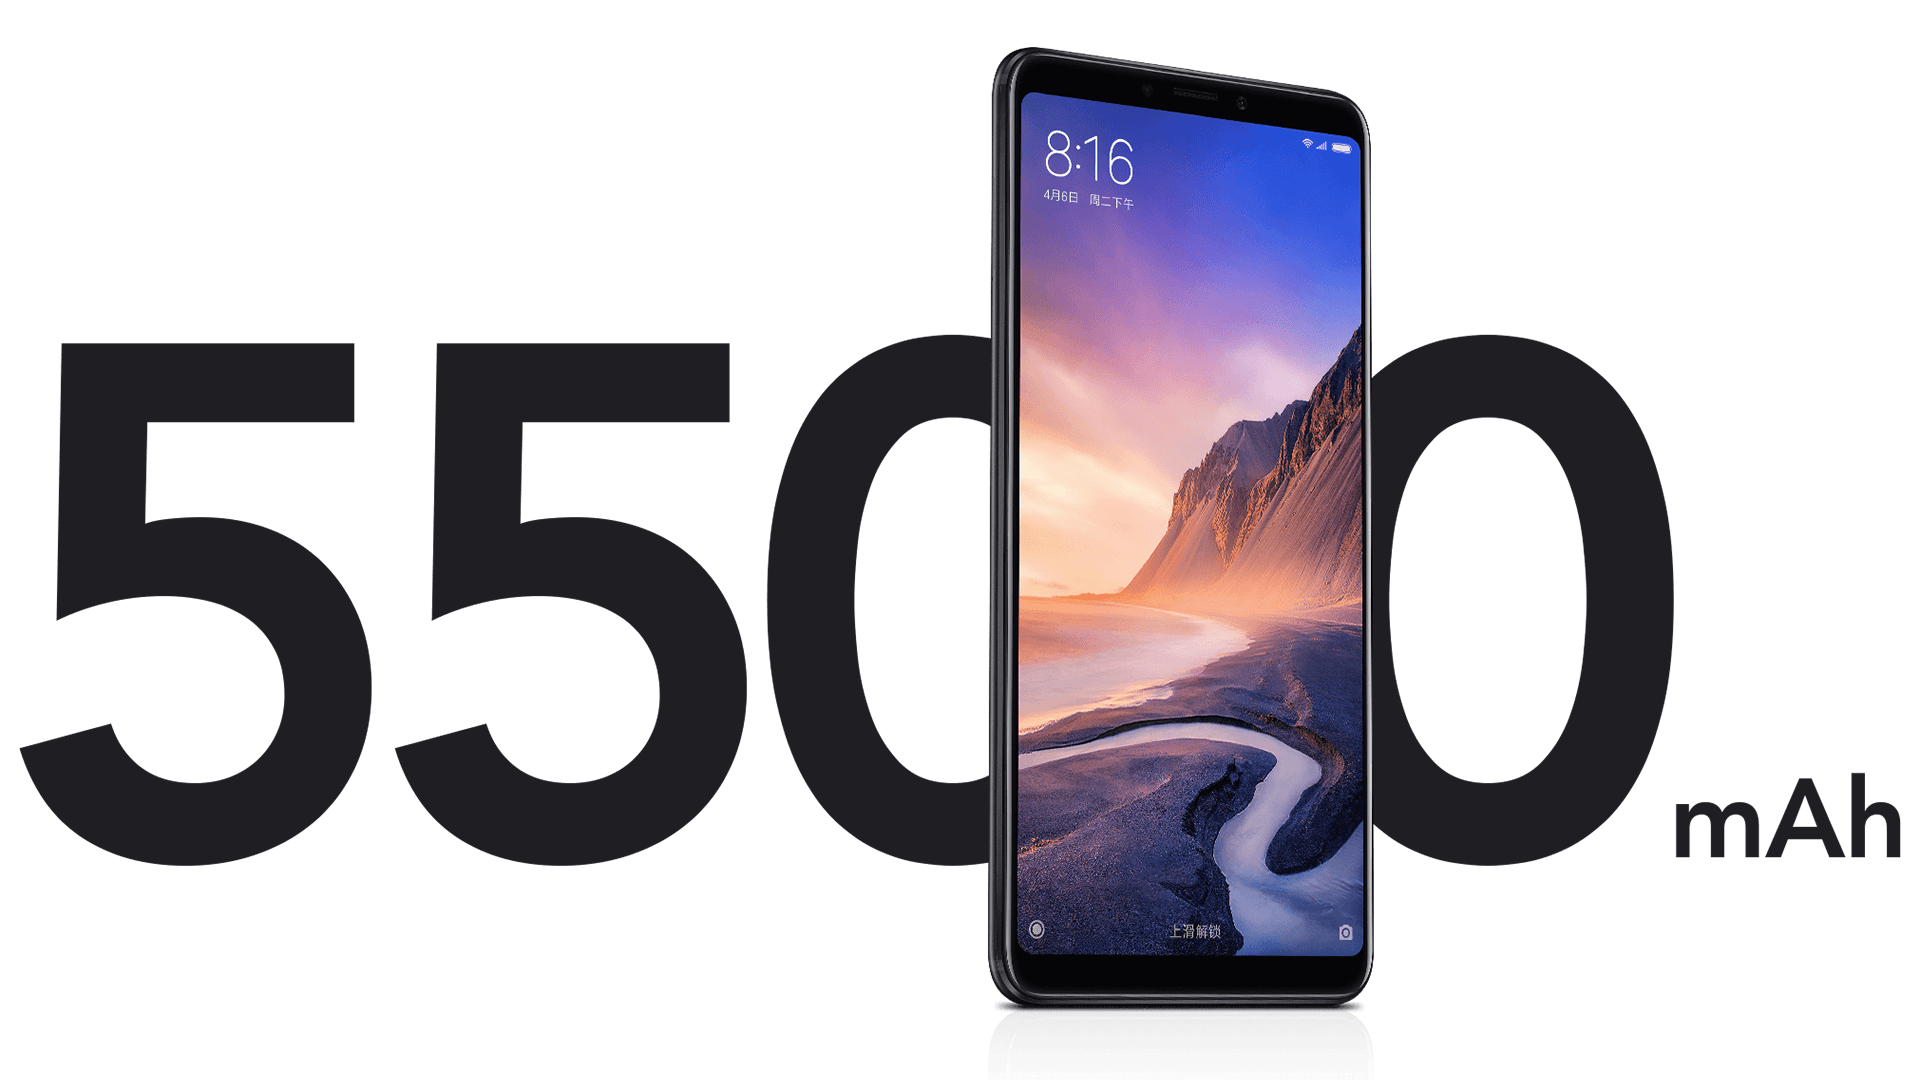 Xiaomi Mi Max 3 launched with Snapdragon 636 & 5,500mAh battery 6